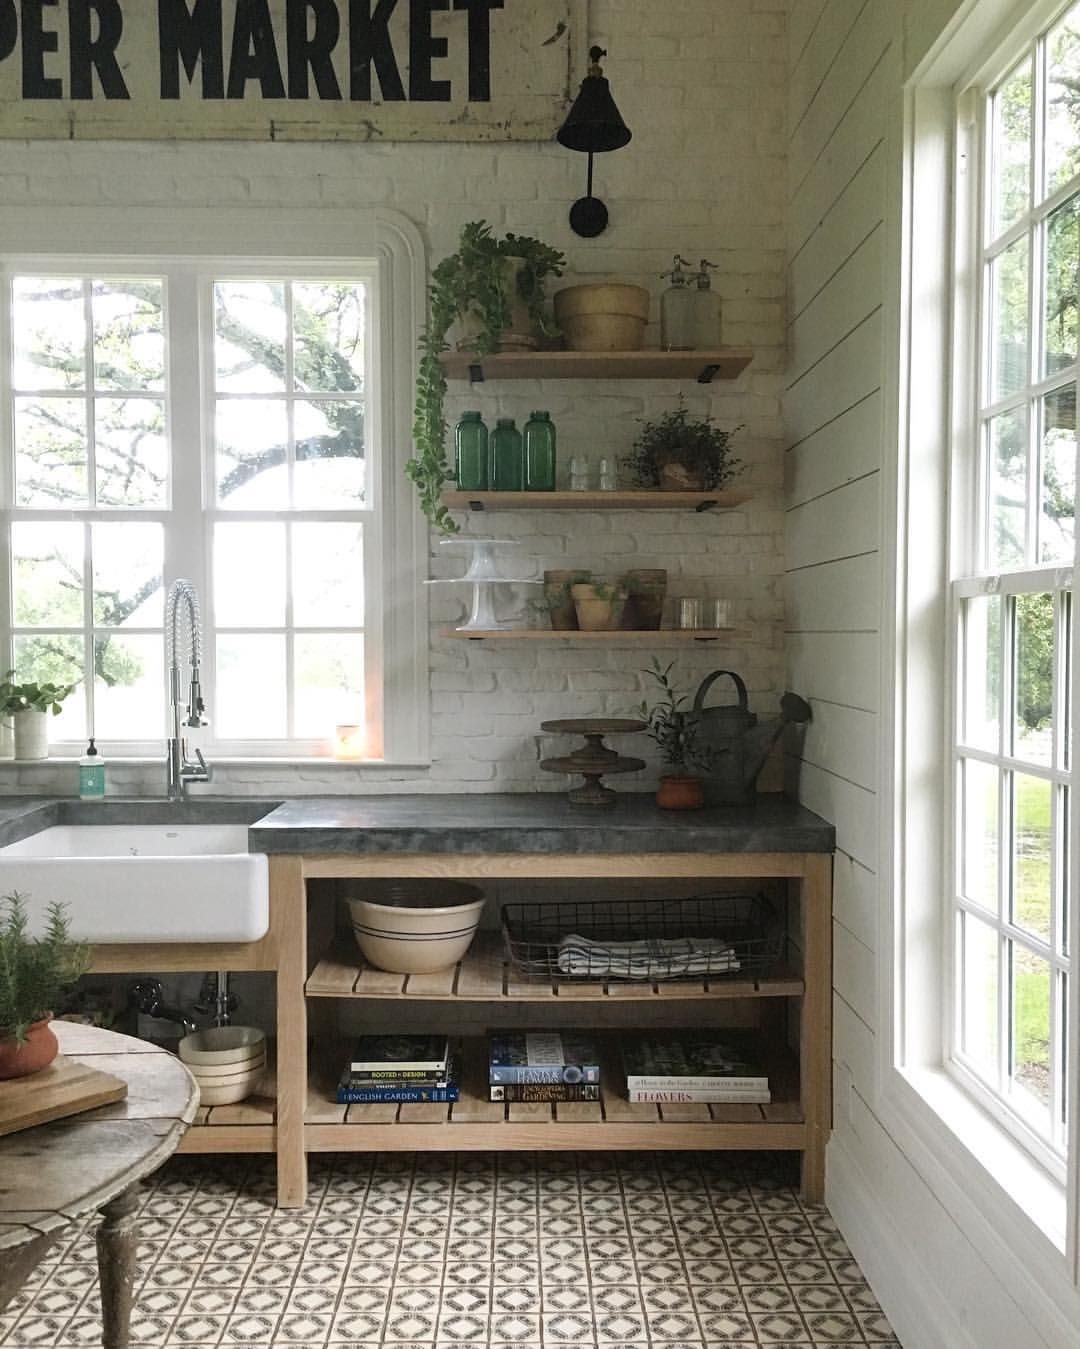 Open Kitchen Cabinet Decorating Ideas: Take A Tour Of Chip And Joanna Gaines's Shiplap-Filled